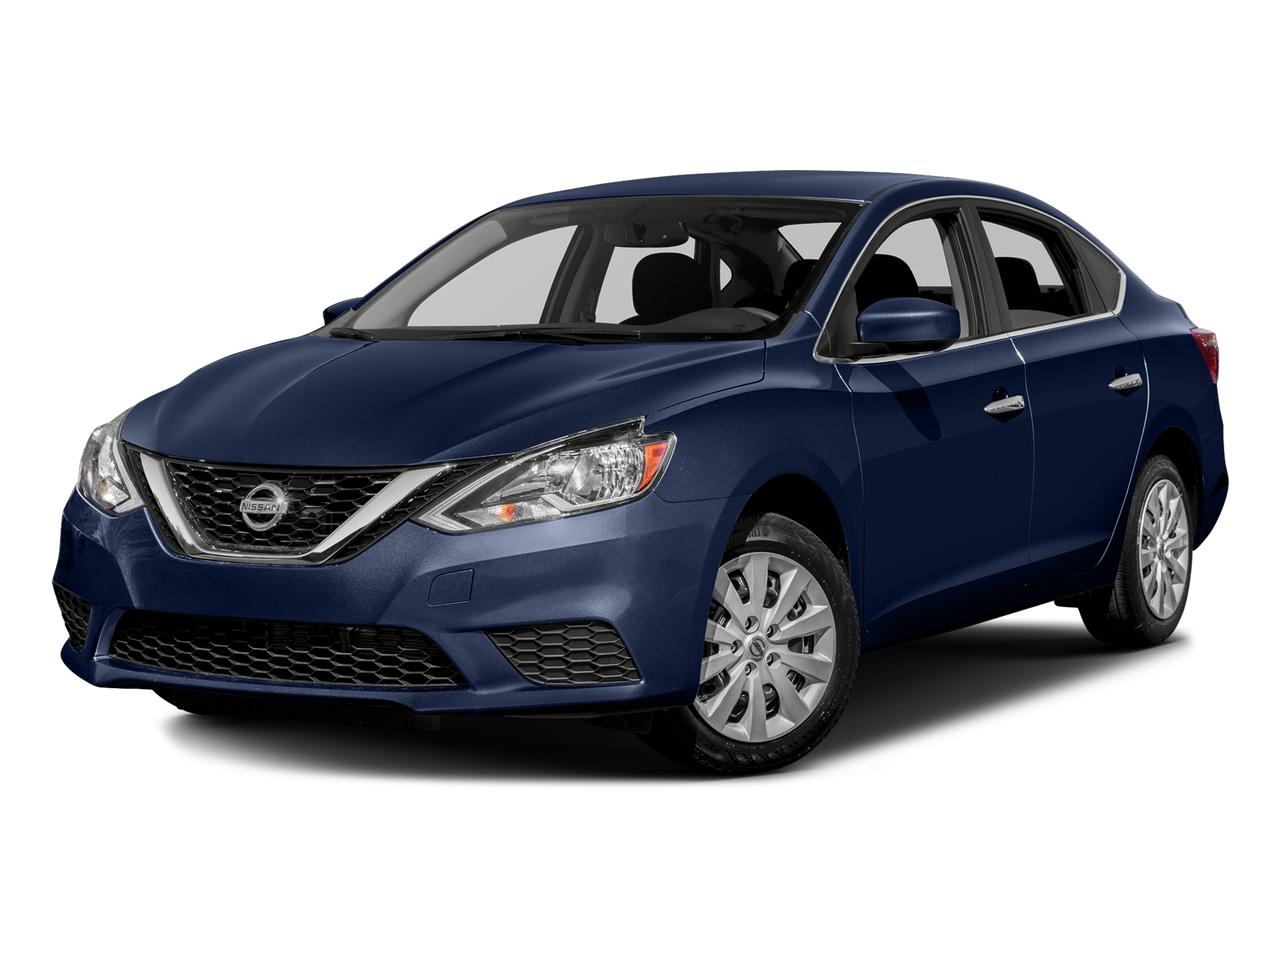 2017 Nissan Sentra Vehicle Photo in Manassas, VA 20109